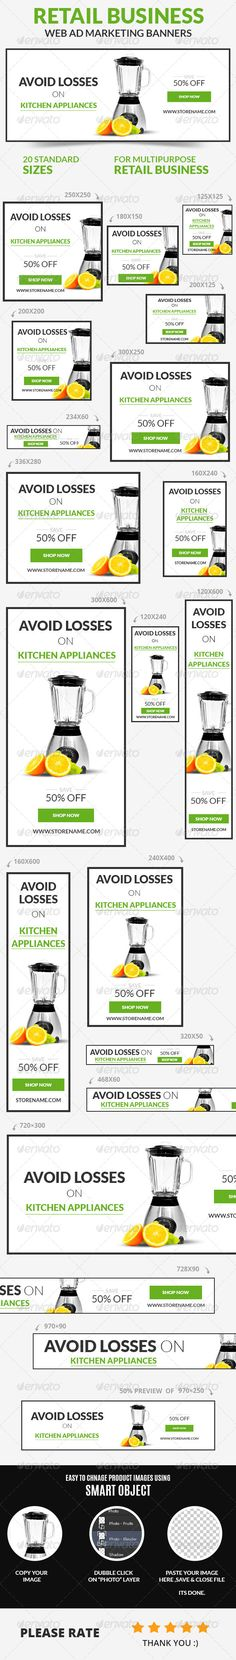 Retail Business Web Ad Marketing Banners Template PSD   Buy and Download…